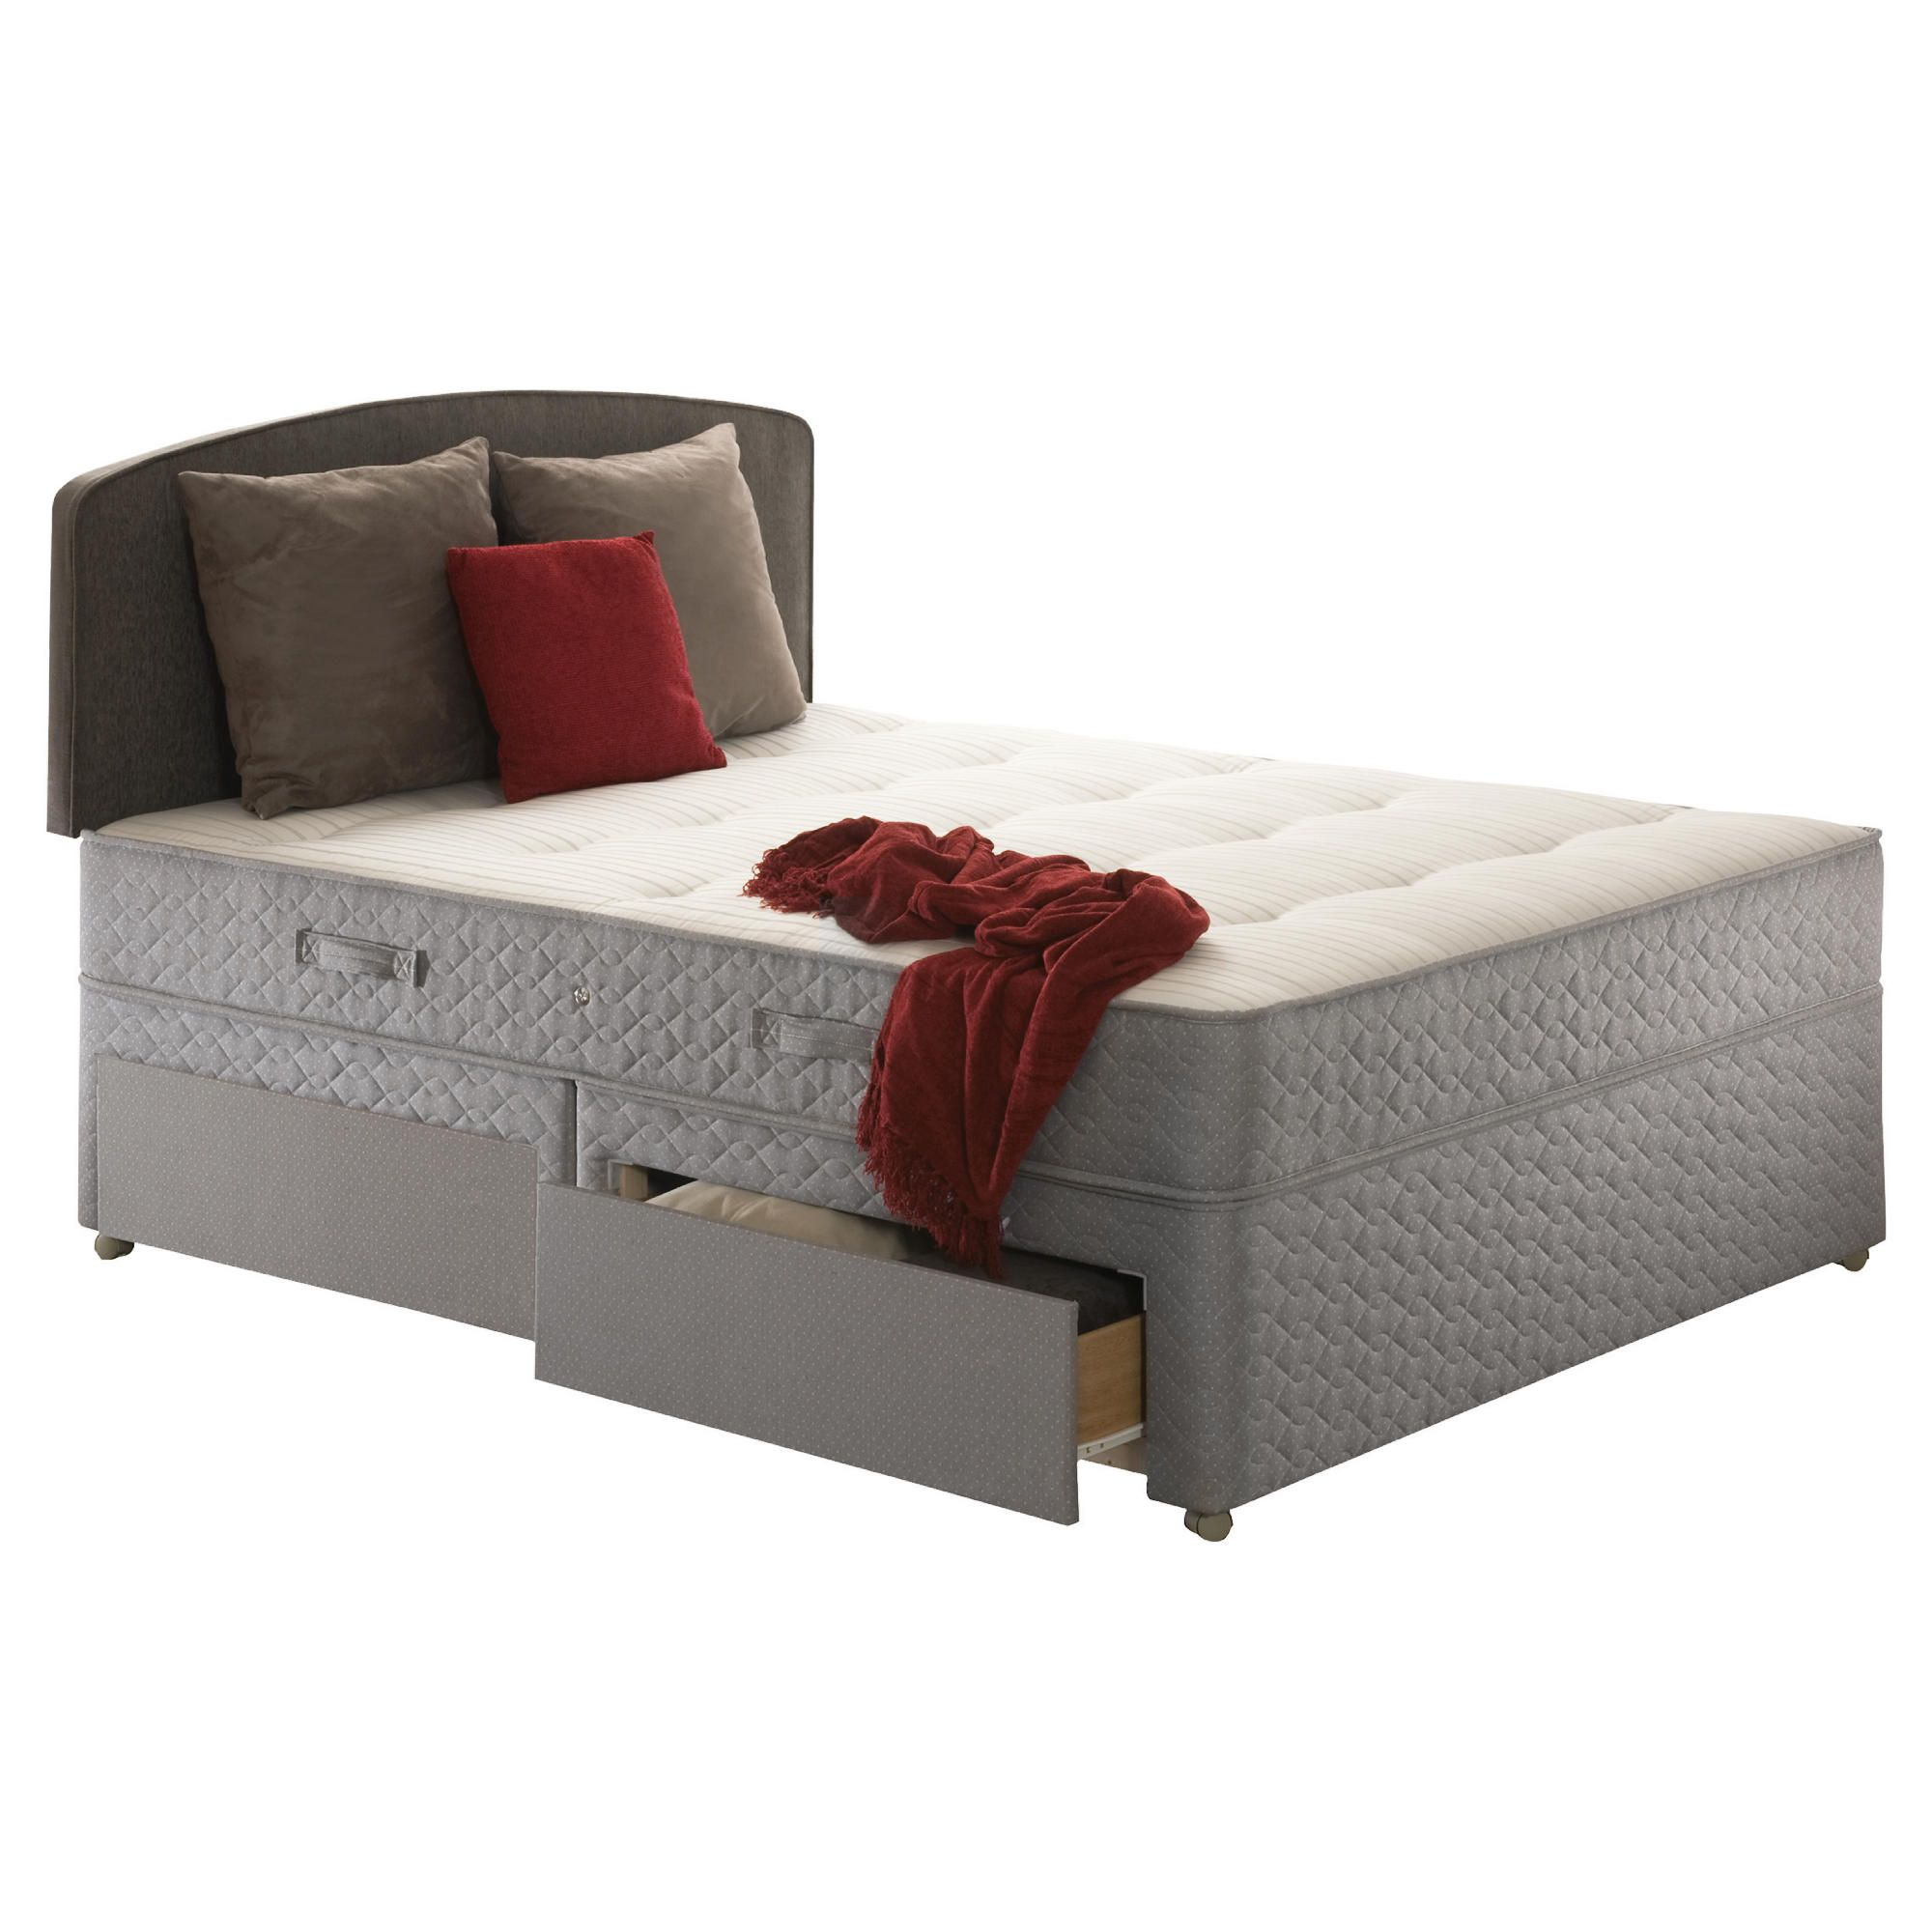 Sealy Posturepedic Ortho Backcare Plus King 4 Drawer Divan Bed at Tesco Direct